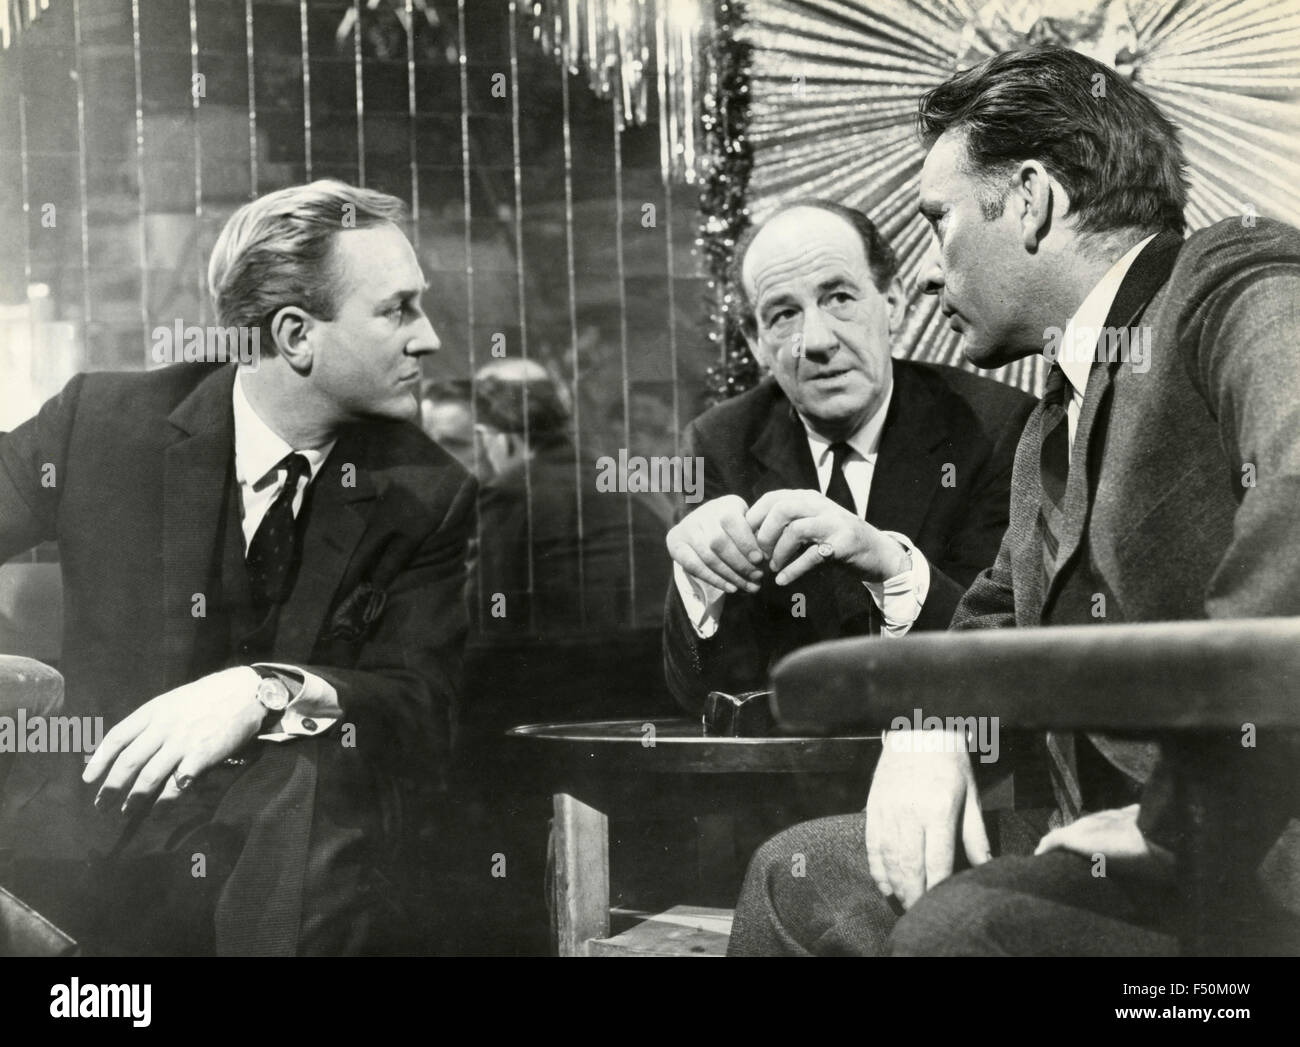 The Welsh actor Richard Burton in a scene from the film 'The Spy Who Came in from the Cold' , UK 1963 - Stock Image